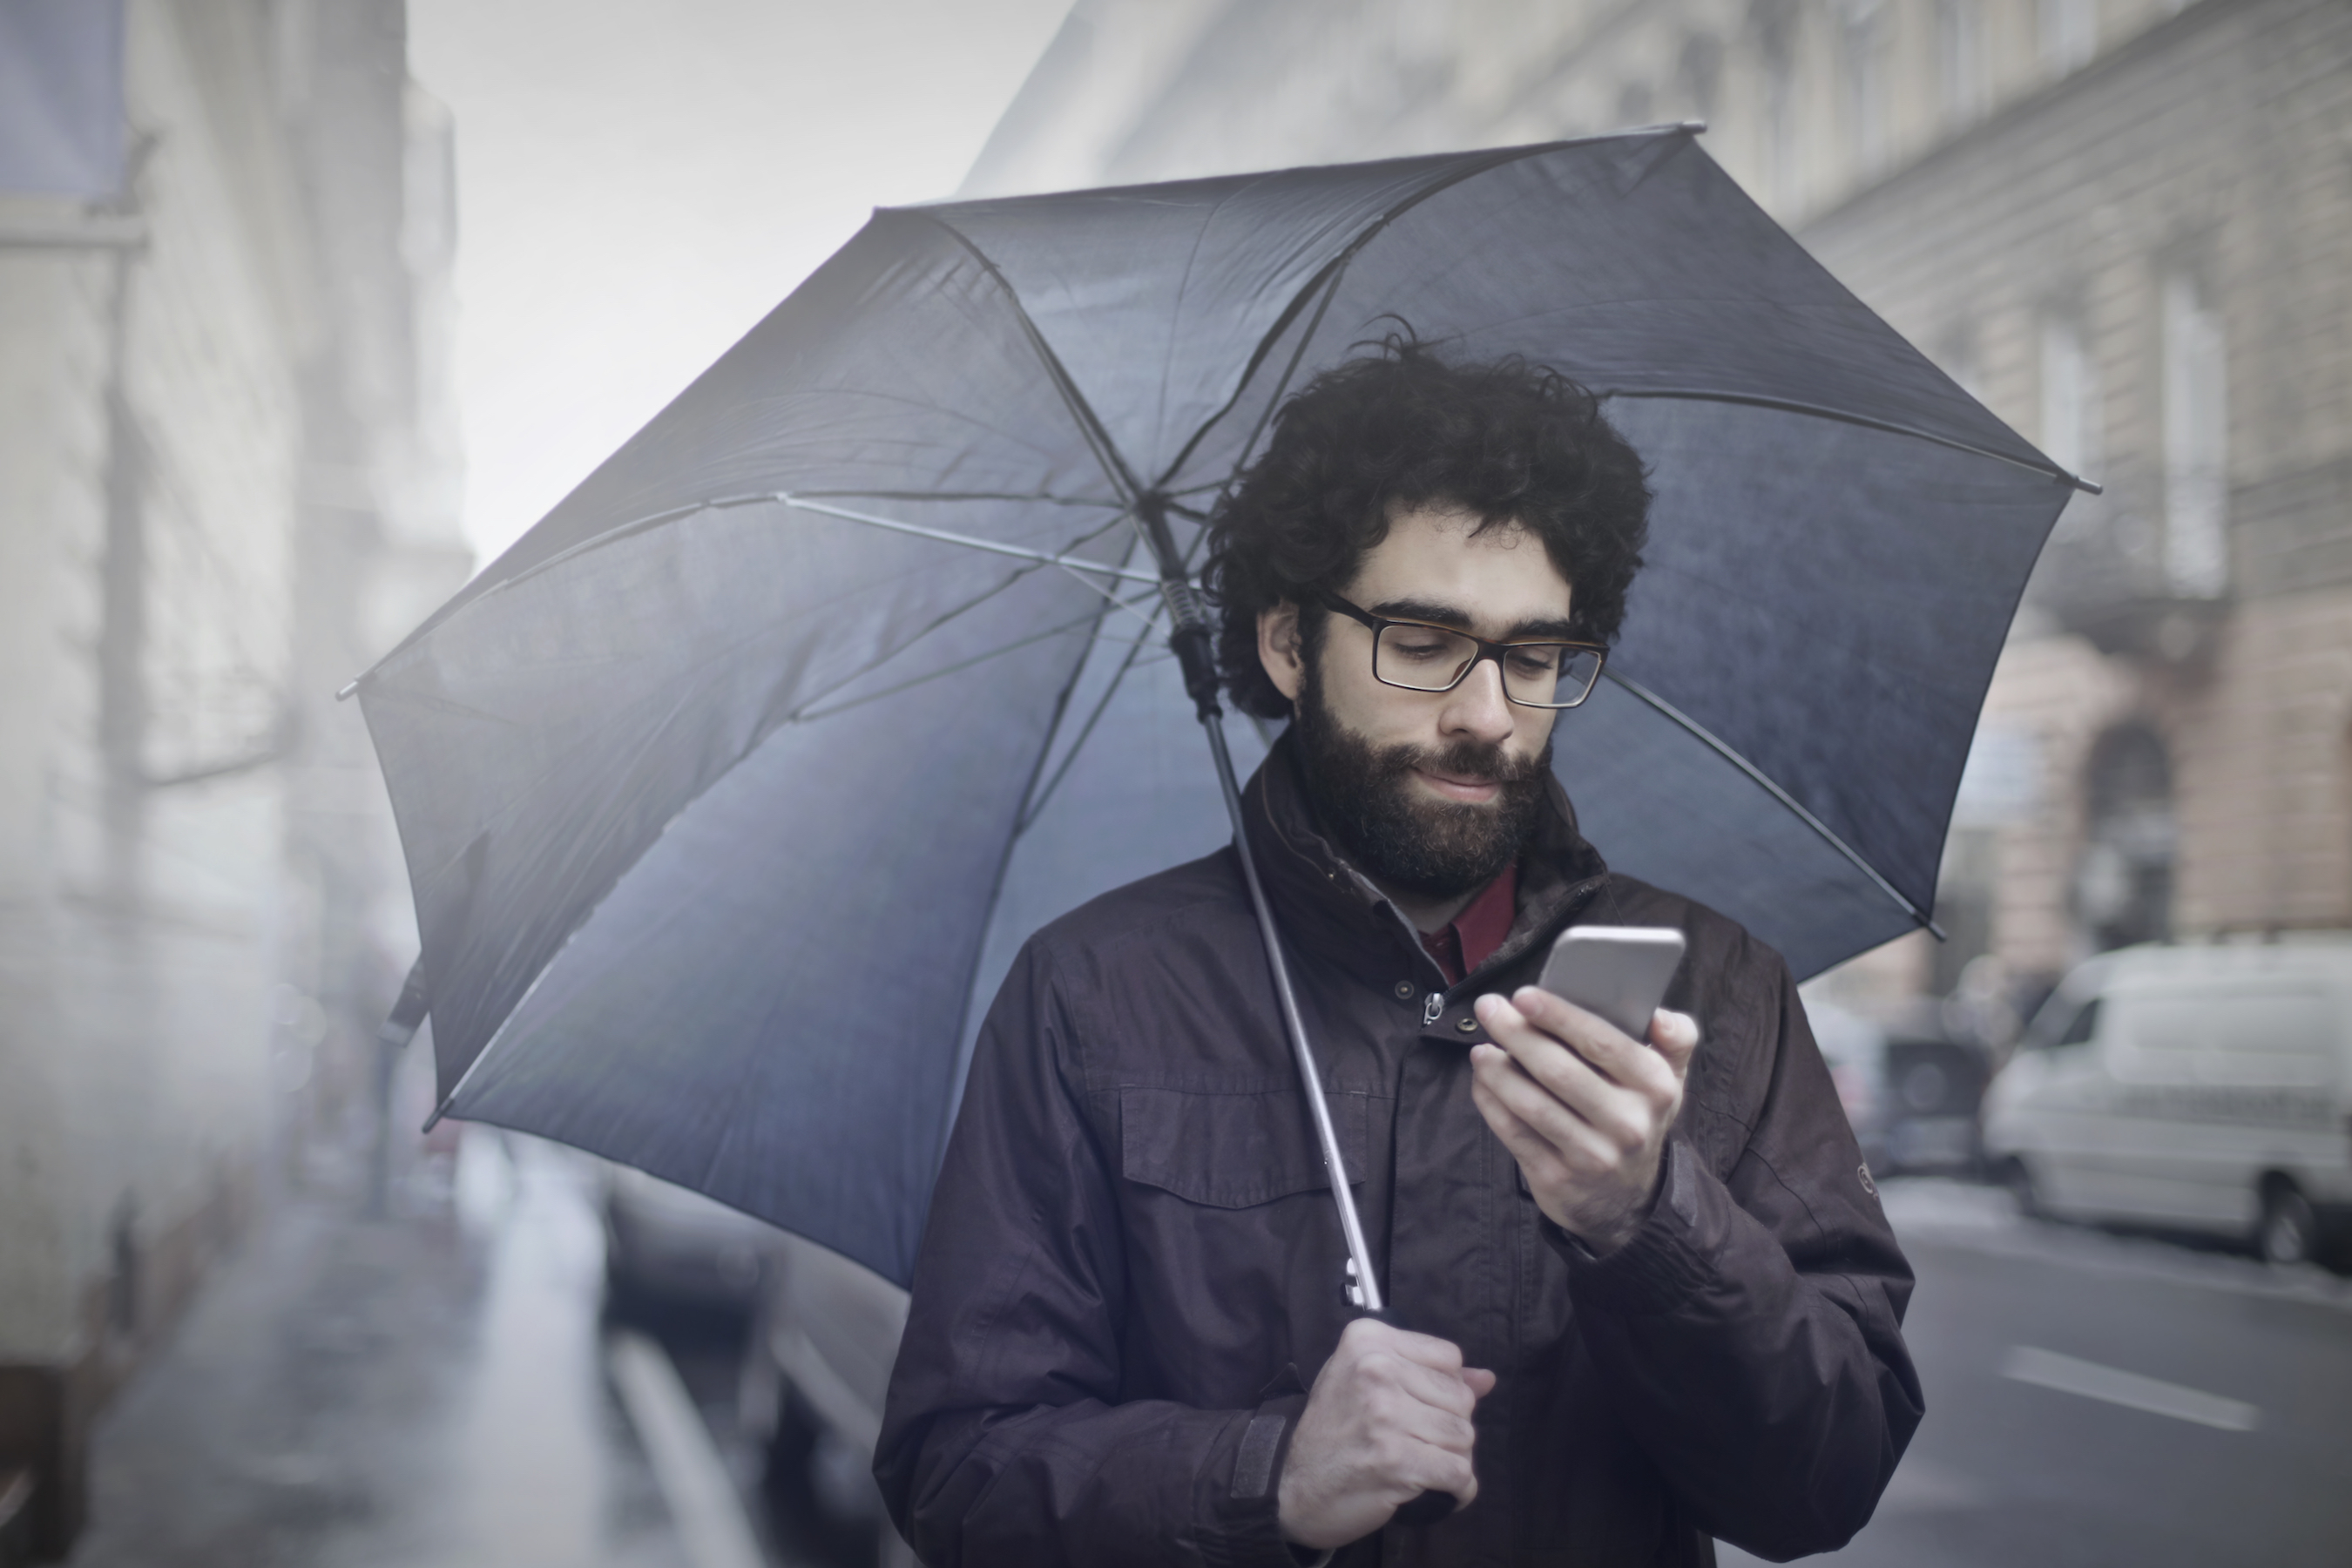 A new study has found that certain thoughts and comments shared on social media may be directly associated with weather patterns.